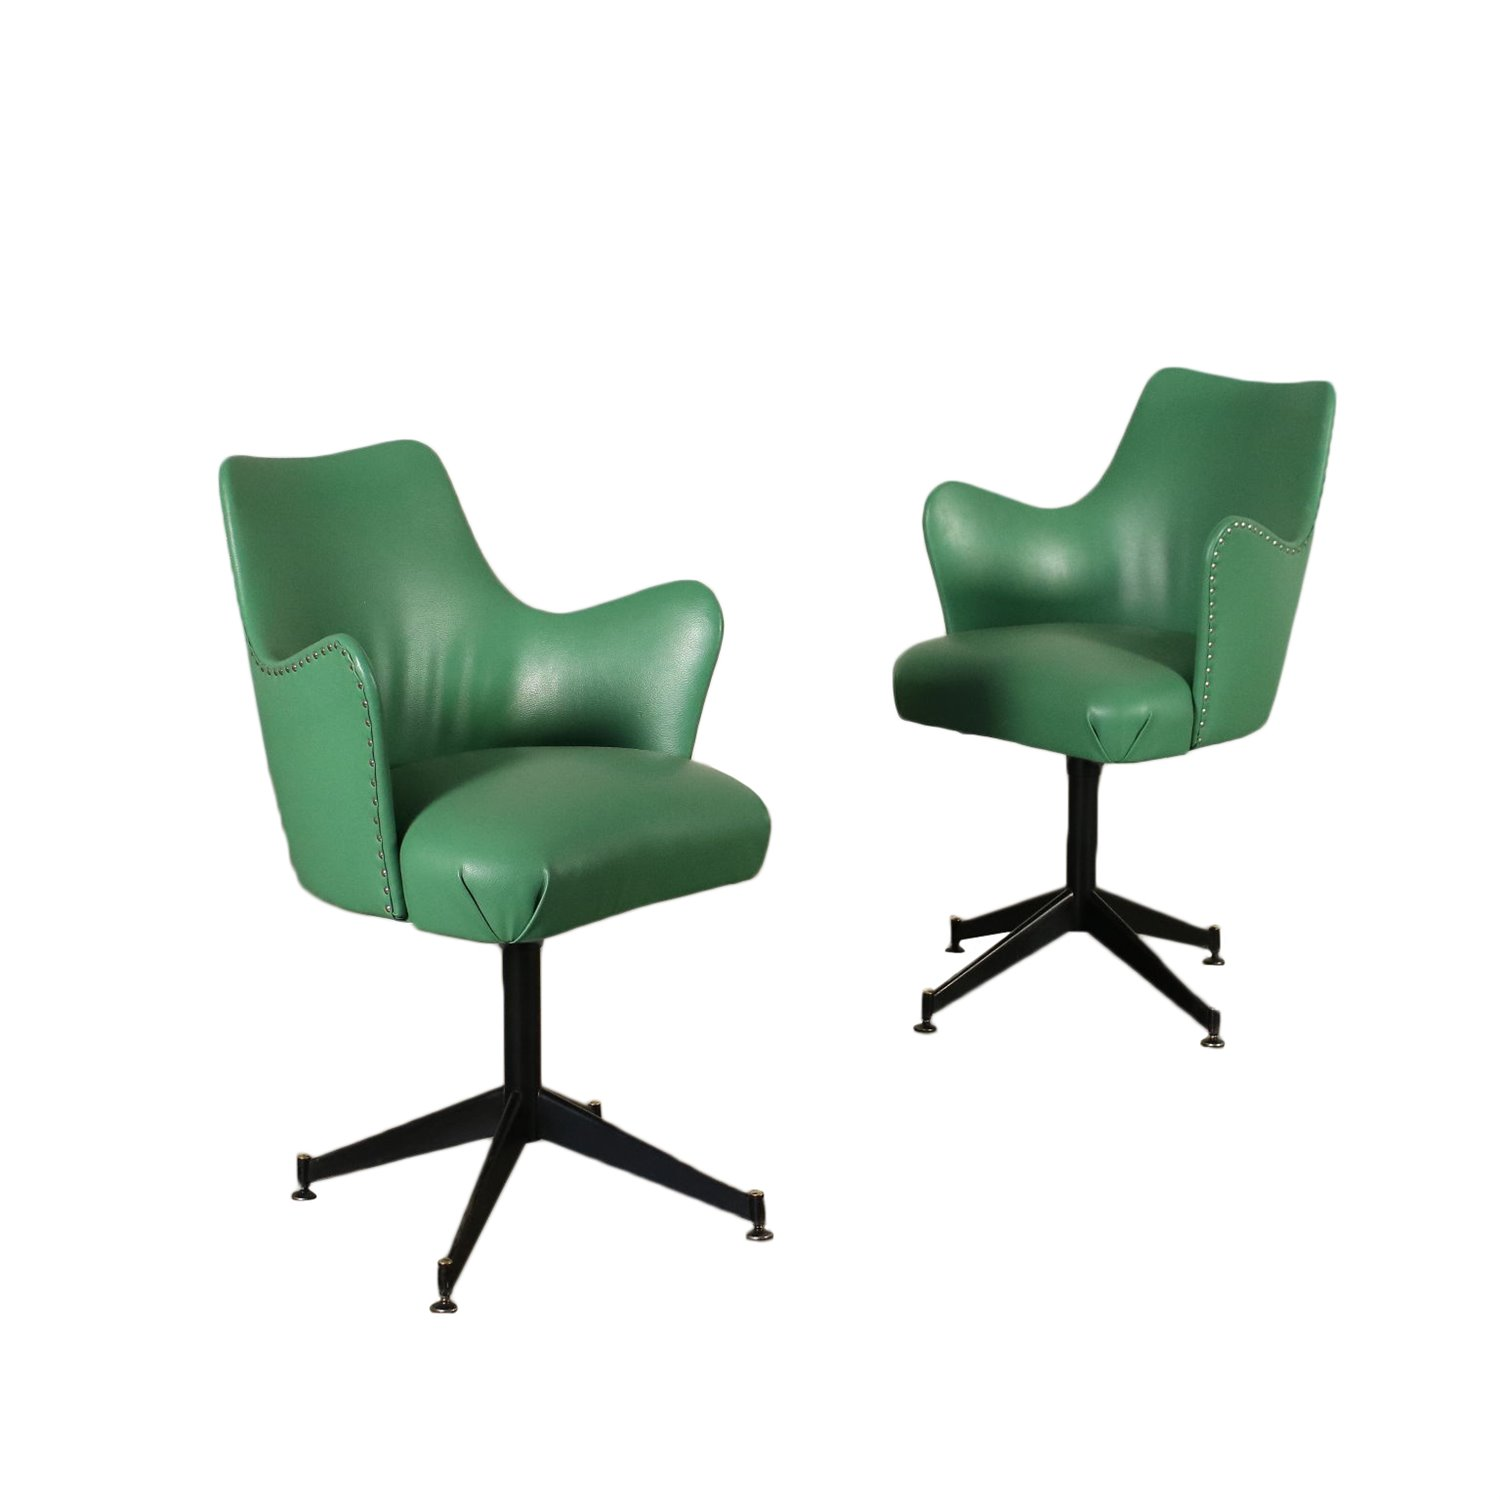 Pair Of Chairs Foam Metal Leatherette Italy 1950s 1960s